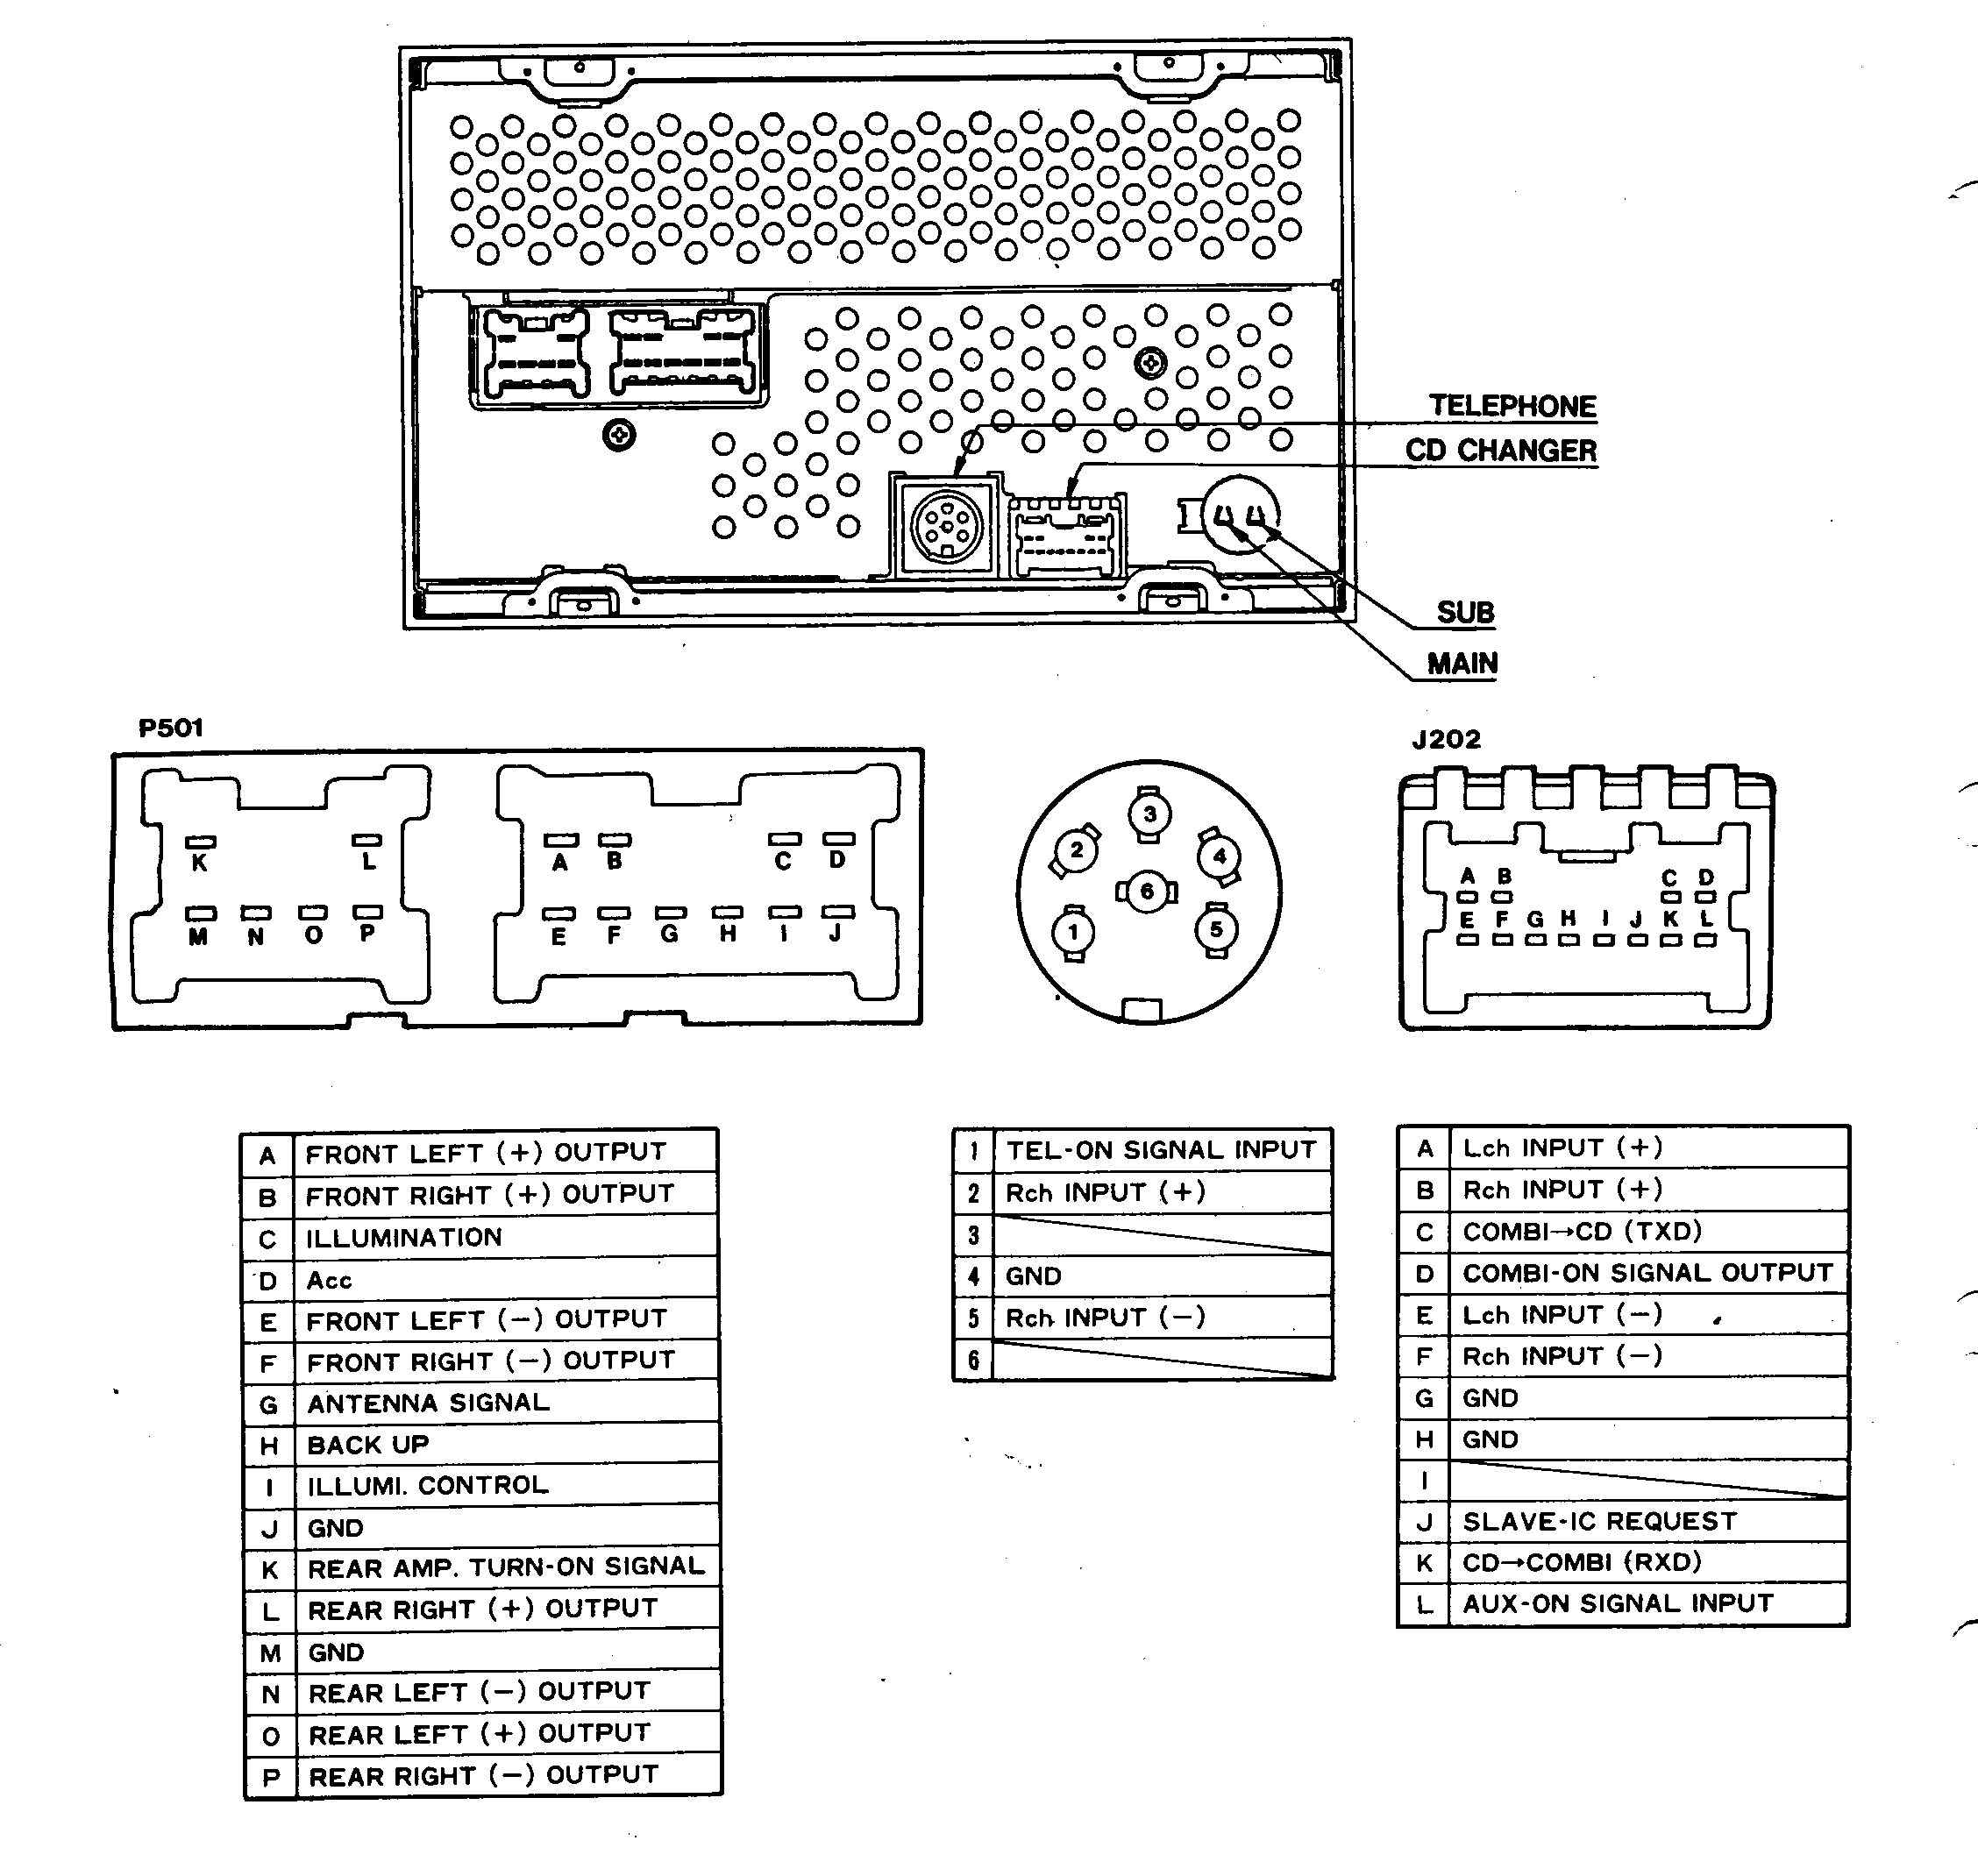 wrg 1615] fuse panel diagram for 1992 nissan sentra 2005 Maxima Fuse Box Diagram